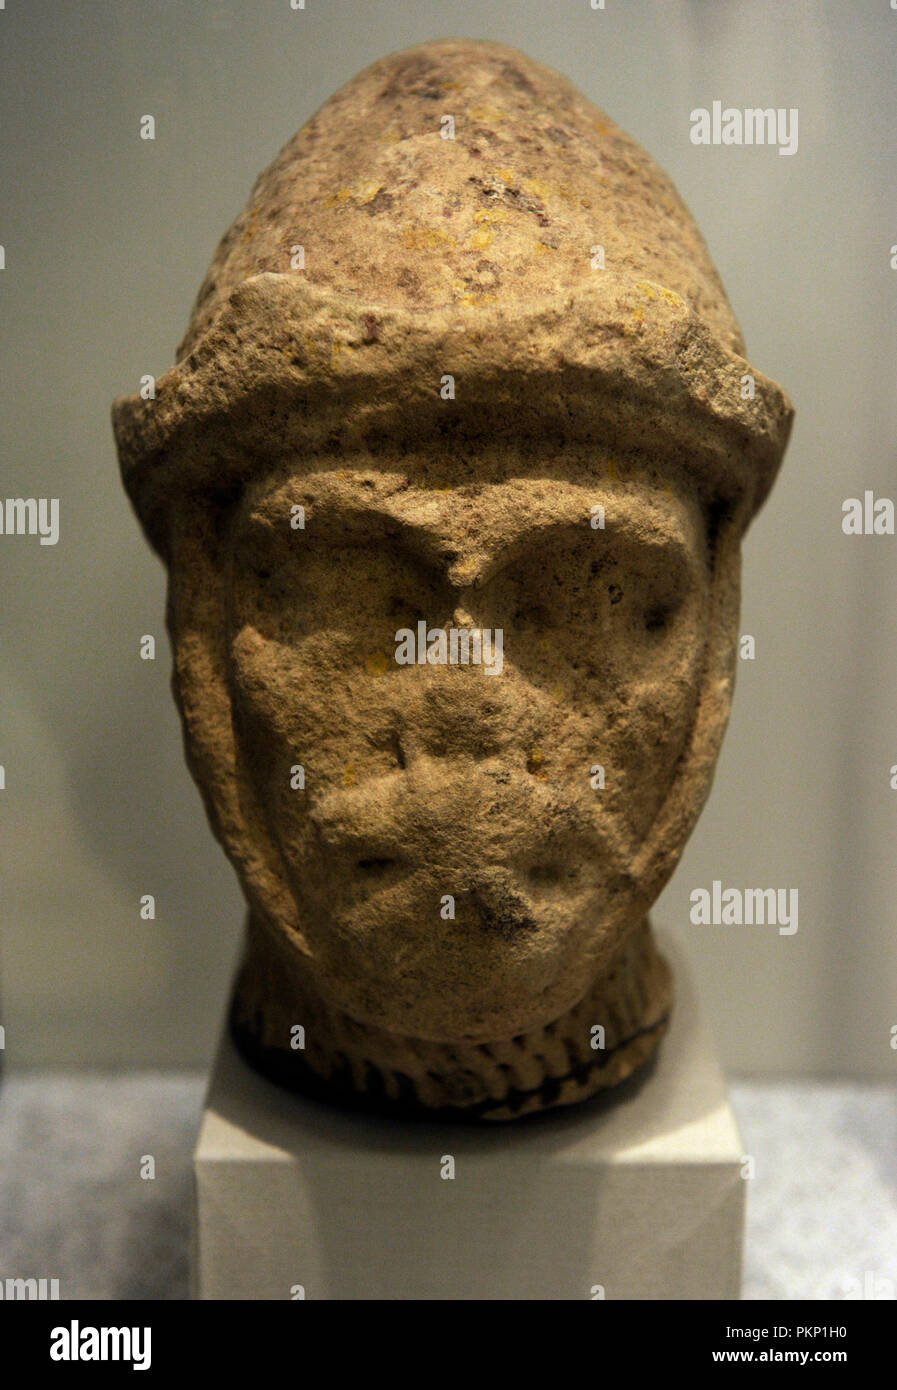 Head of a knight figure. England, 13th  century. Stone. Erworben 1994. The crusades emanated from the whole of western Europe. Most of the crusaders into the Holy Land, however, came from England and France.  The German Historical Museum. Berlin. Germany. - Stock Image